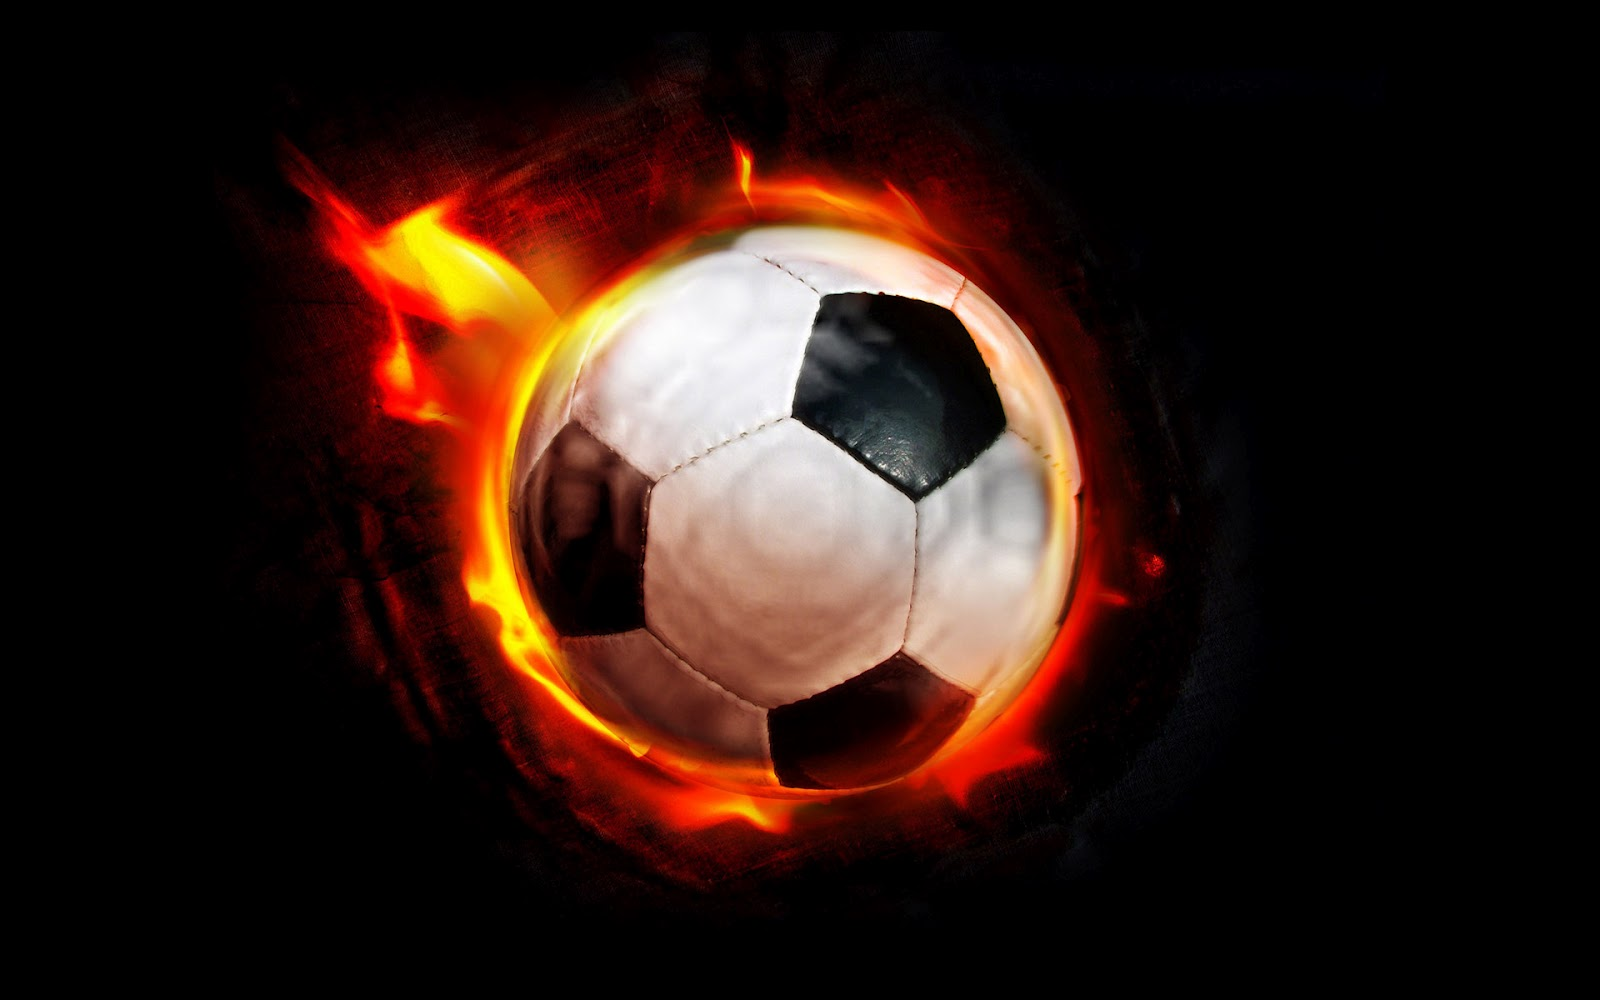 http://2.bp.blogspot.com/-34QMzoK2KMw/T1kNrpNylmI/AAAAAAAAASs/W5lWxeLTU5U/s1600/hd-soccer-fire-fantasy-wallpaper-desktop-background.jpg